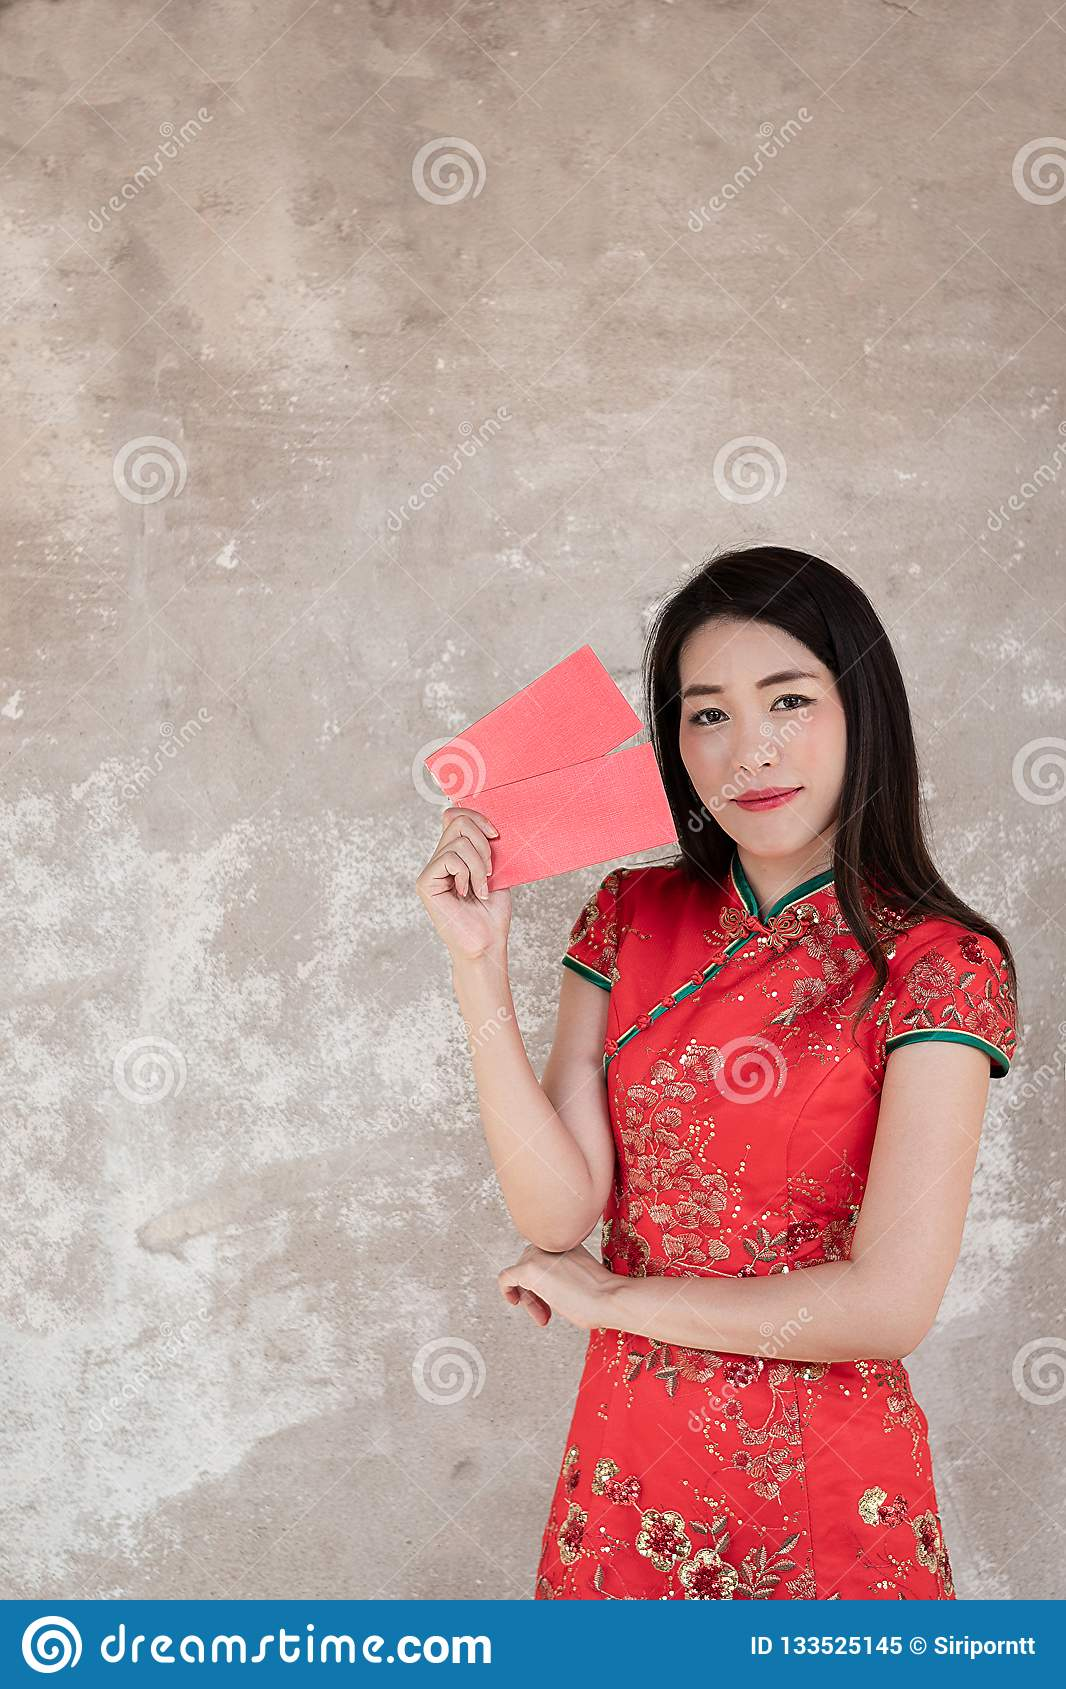 13338a0ed9c6 Asian woman in chinese dress traditional cheongsam holding red pocket  evelop on white textured background with copy space